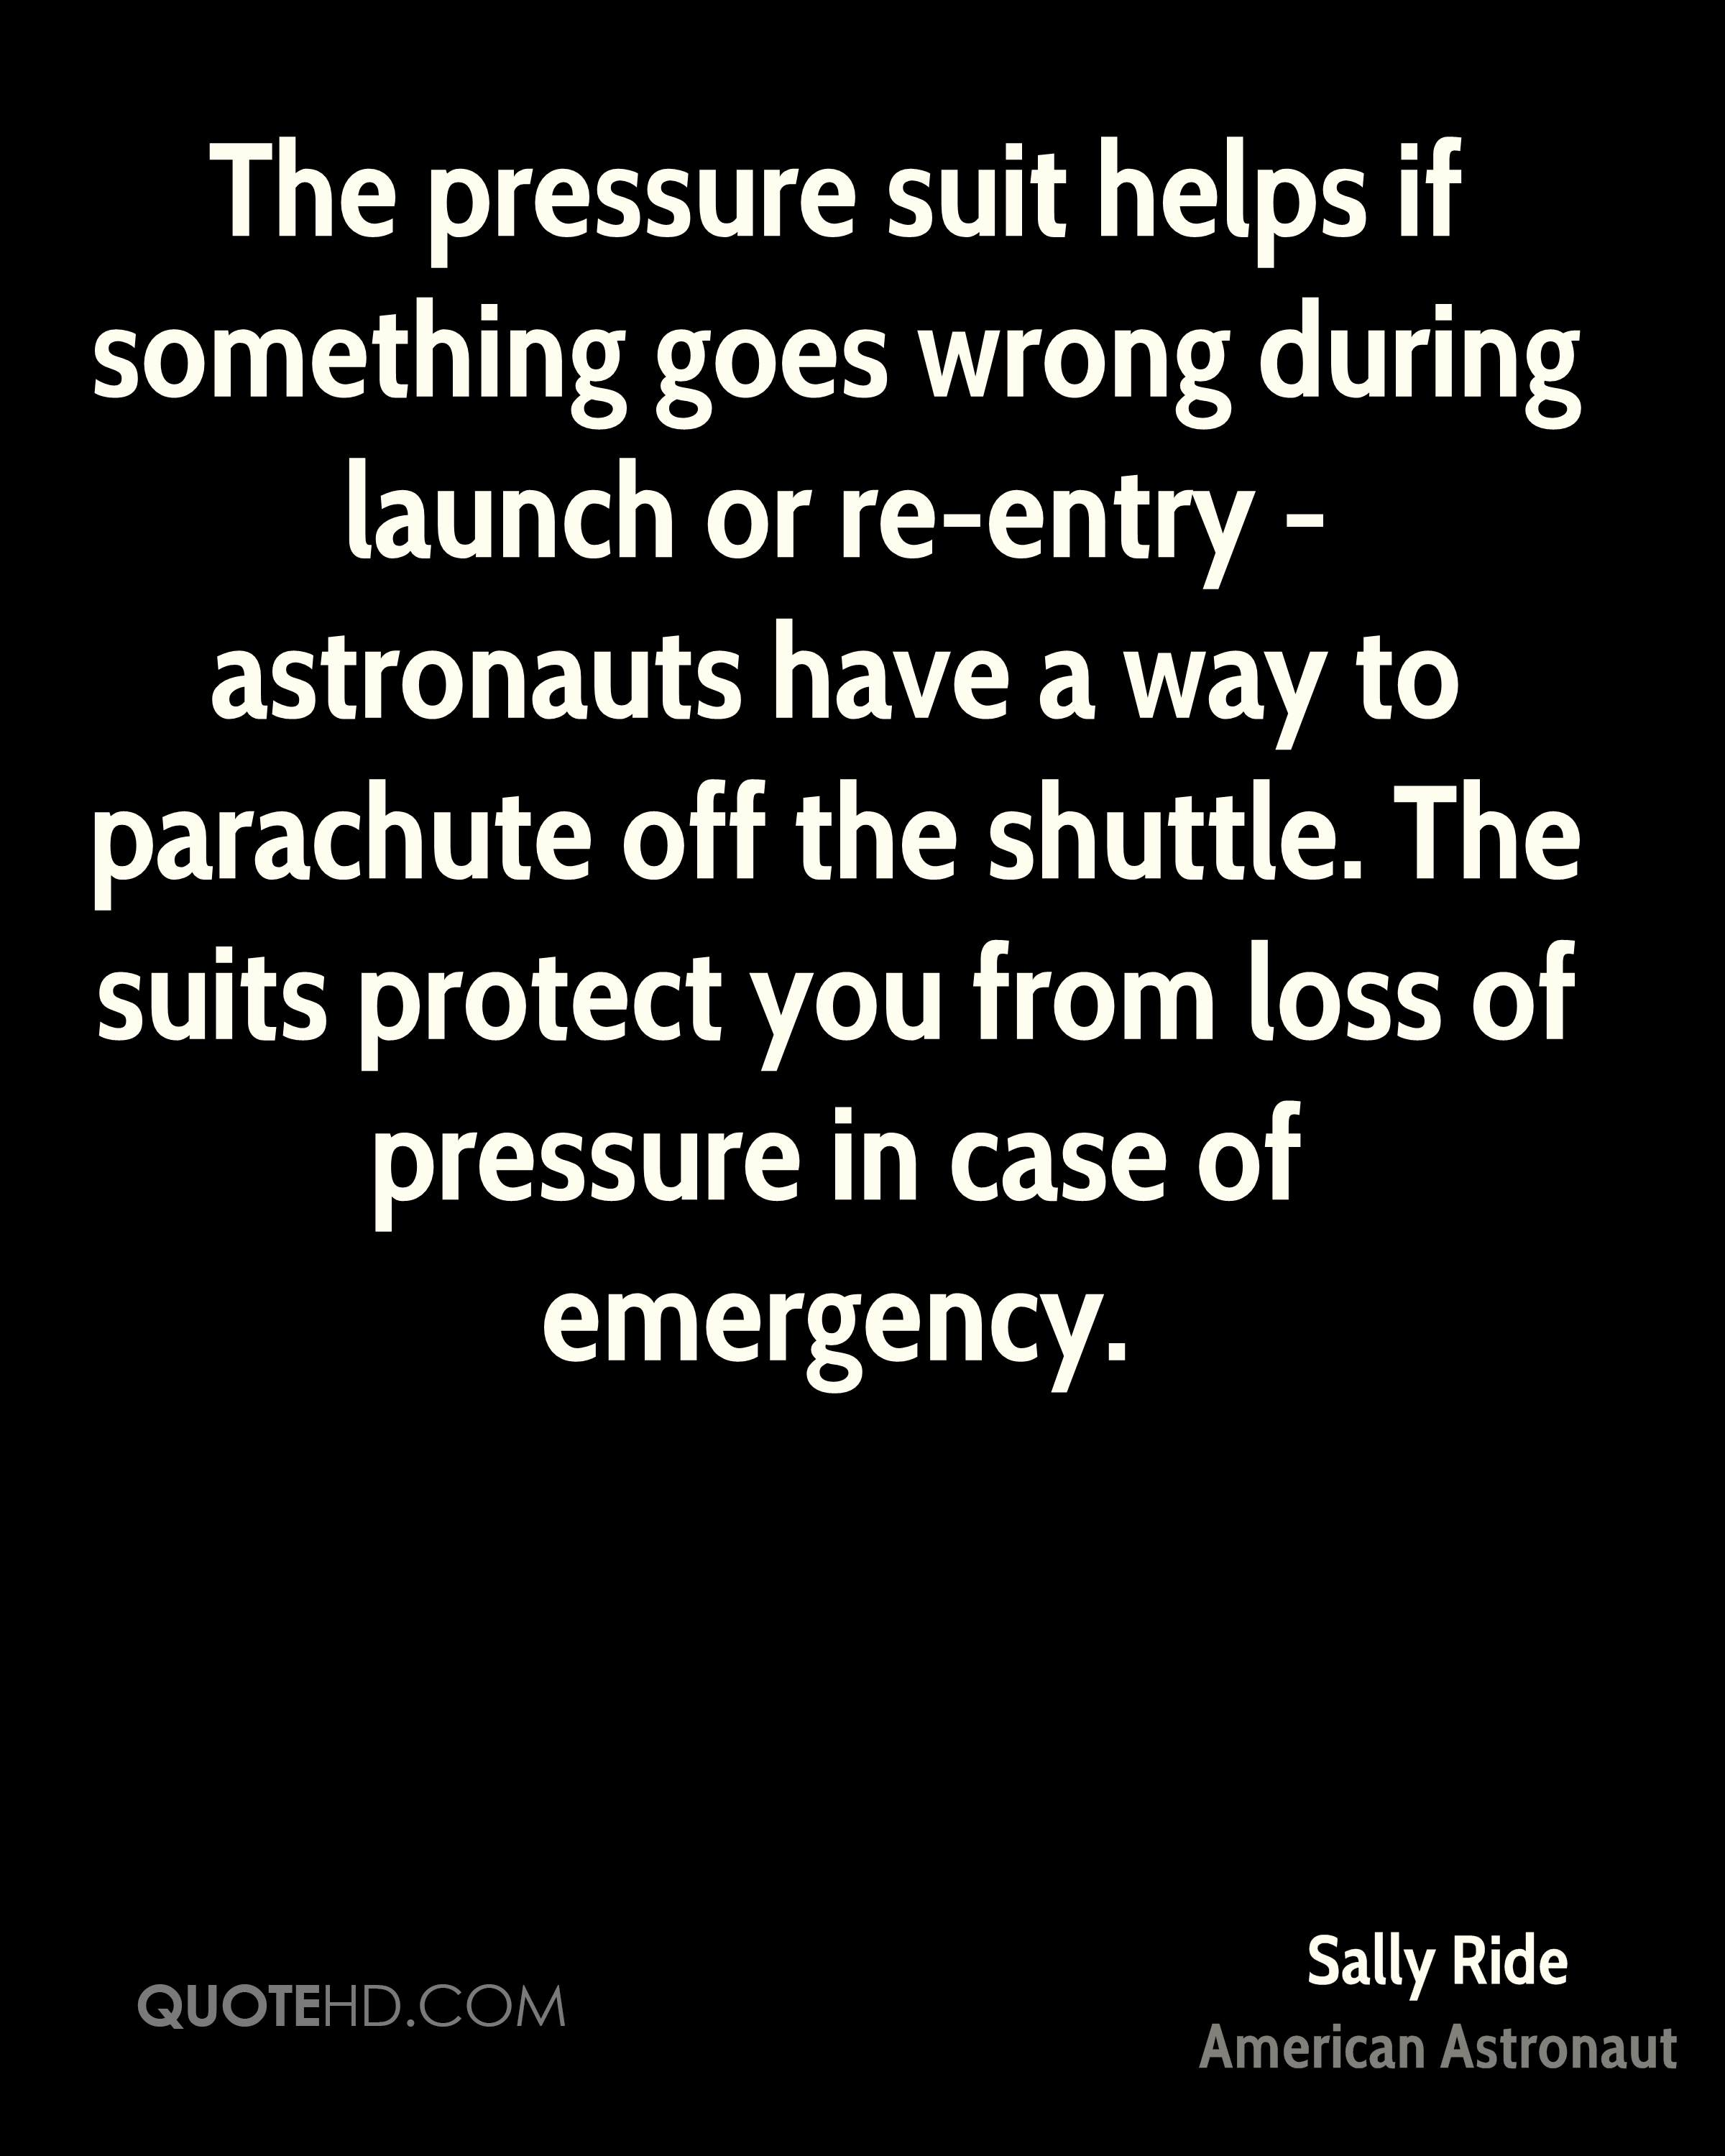 The pressure suit helps if something goes wrong during launch or re-entry - astronauts have a way to parachute off the shuttle. The suits protect you from loss of pressure in case of emergency.